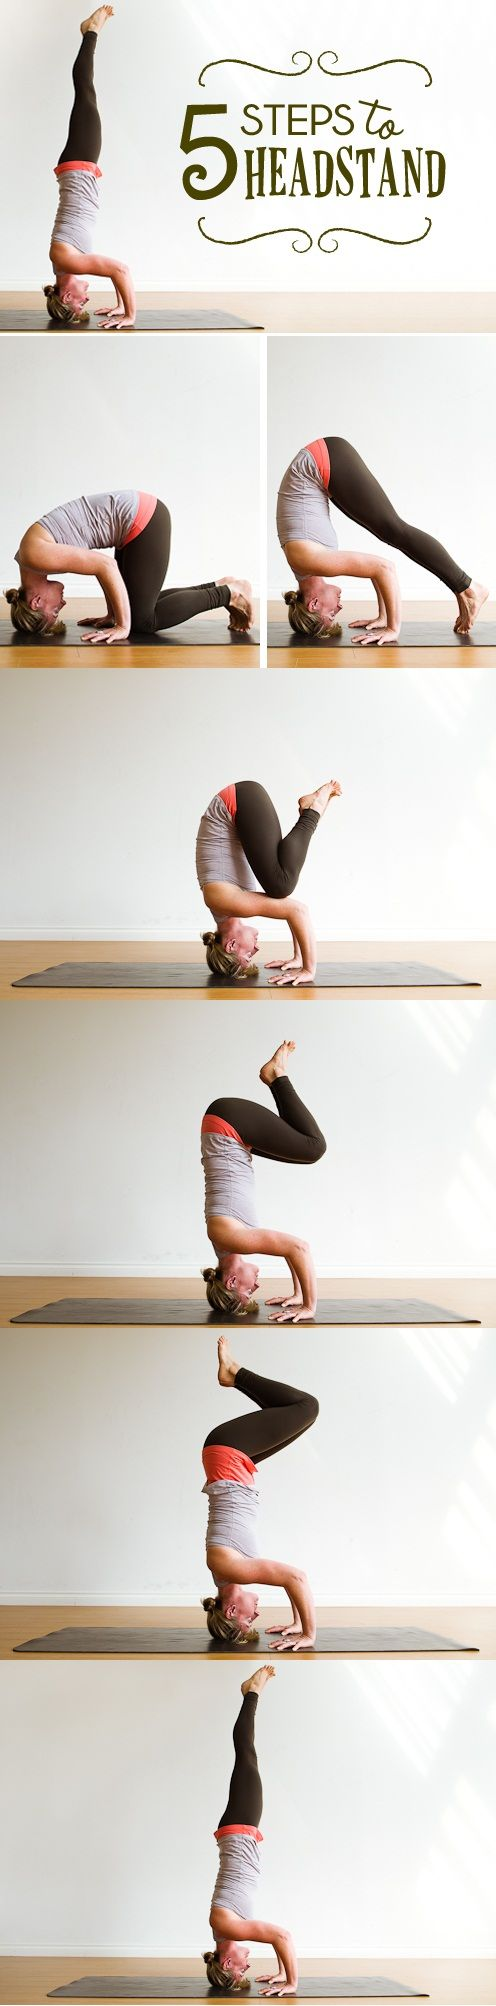 Headstand Steps